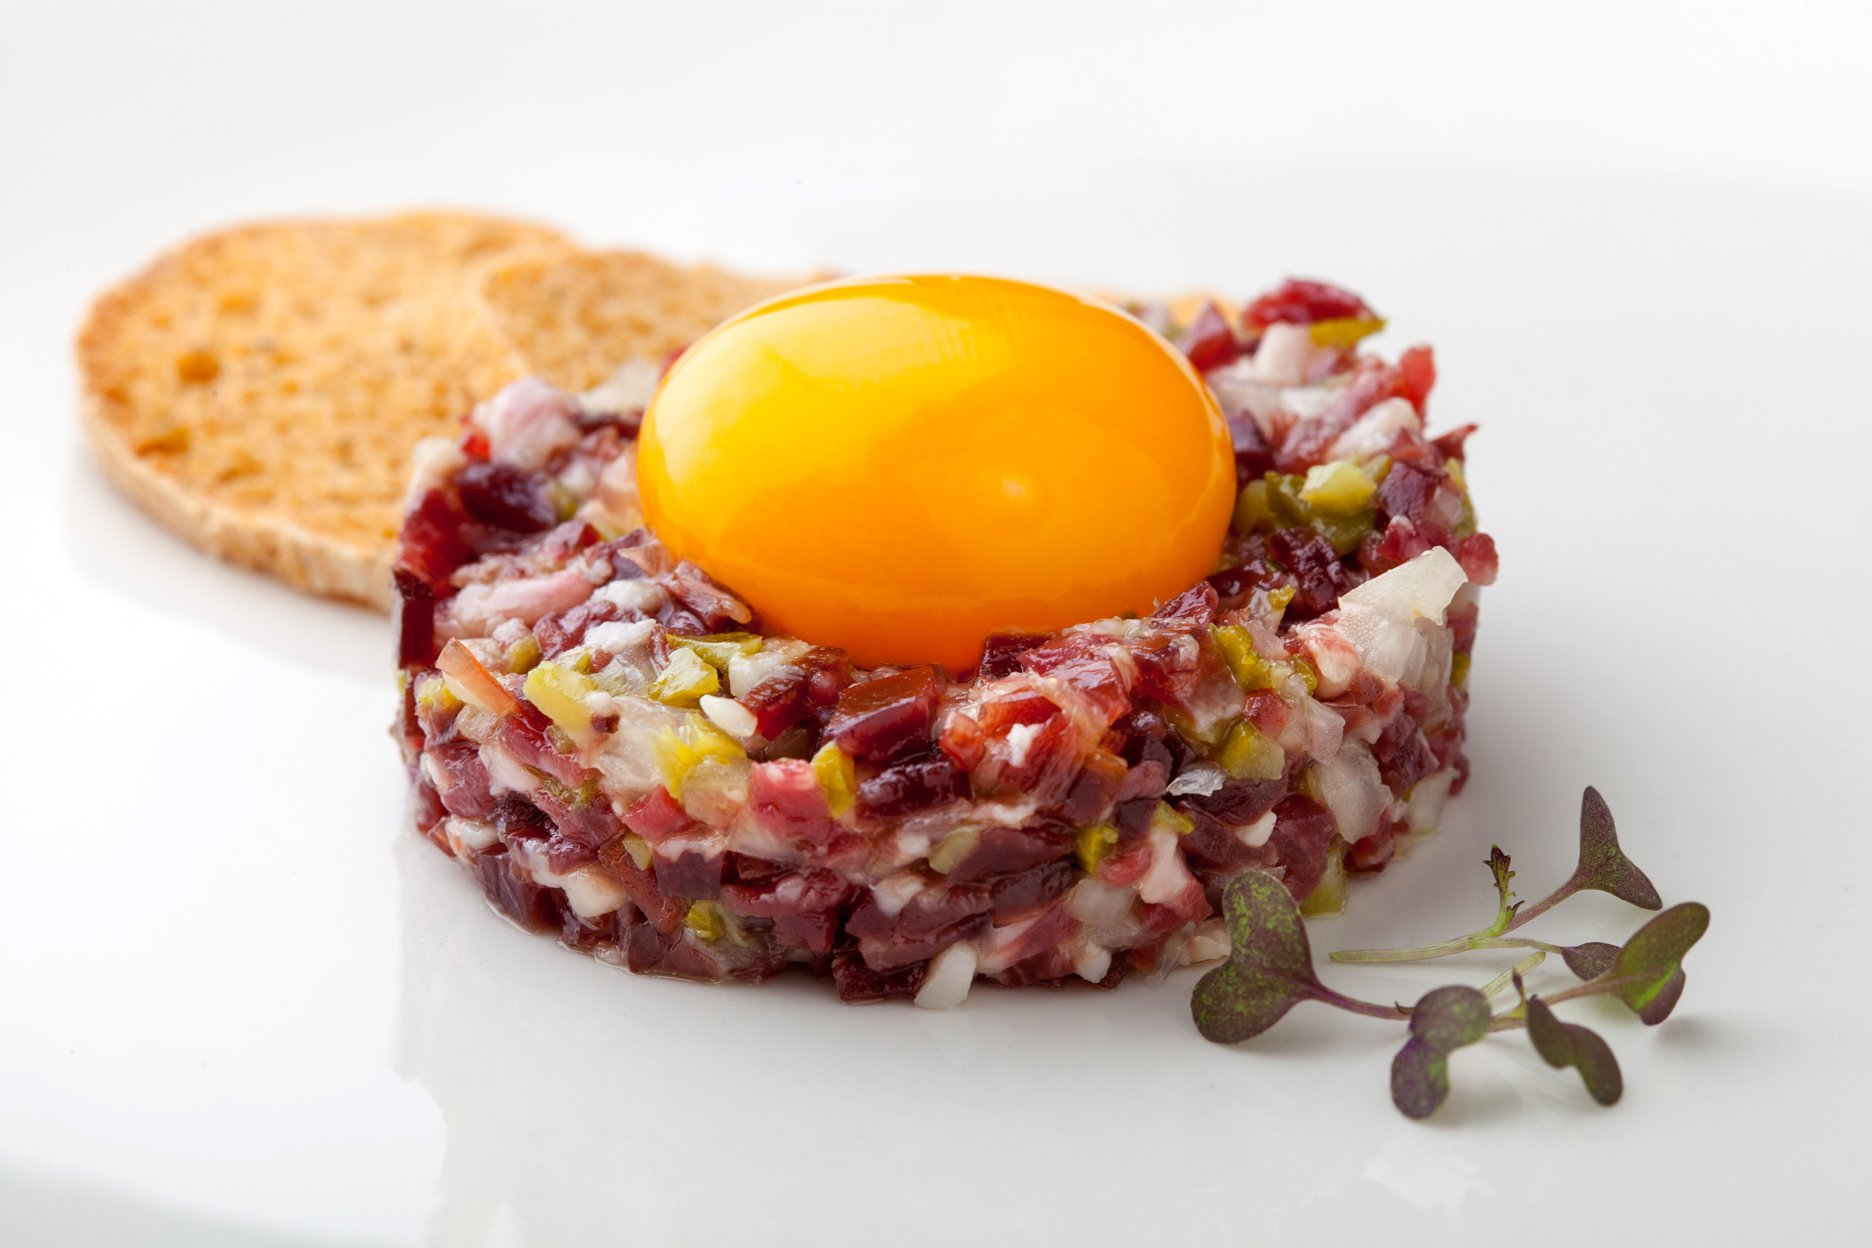 iberico Ham Tartare with cured egg yolk - Recipe